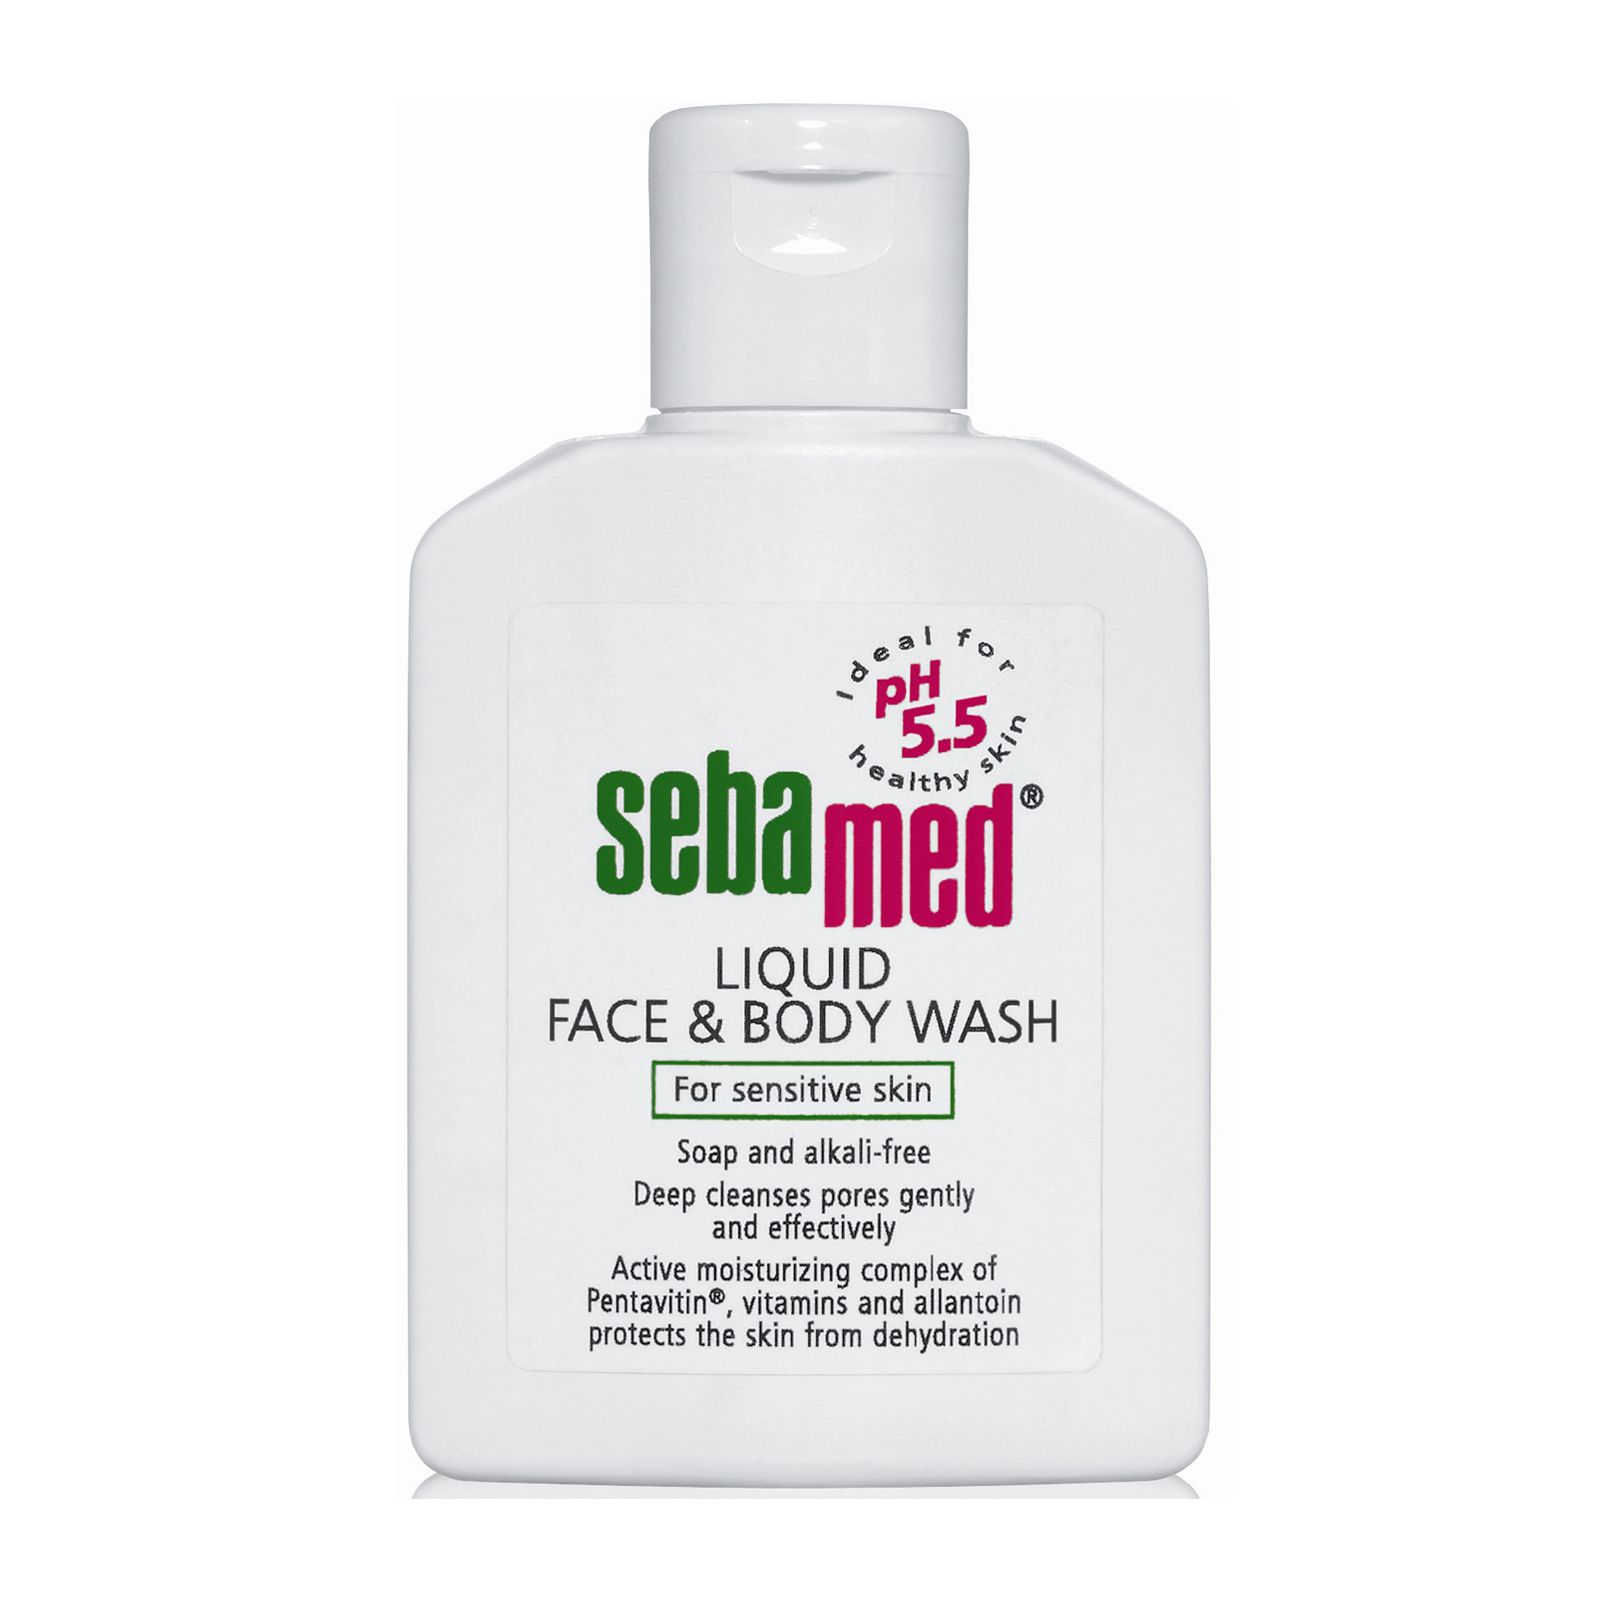 Sebamed face and body wash